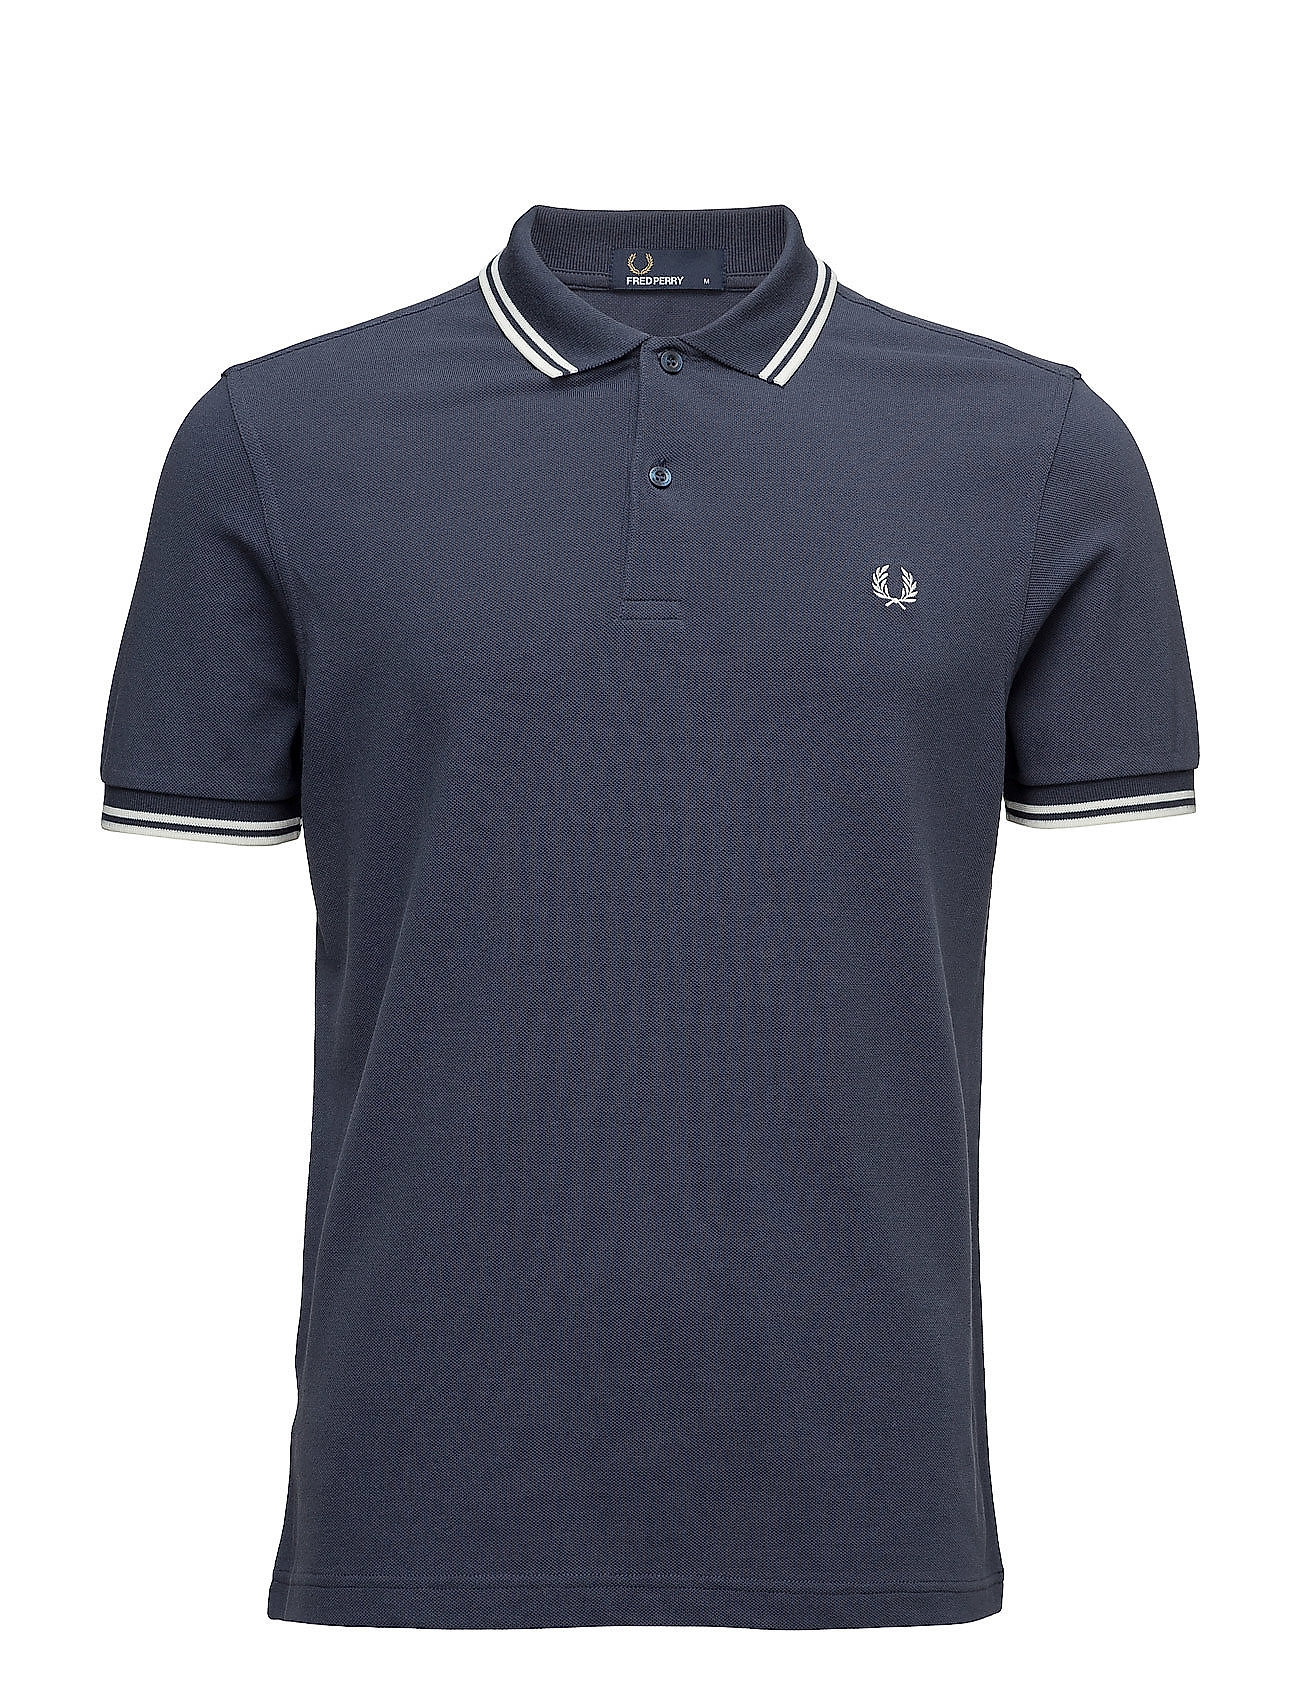 Twin Tipped Fp Shirt Fred Perry Kortærmede polo t-shirts til Herrer i